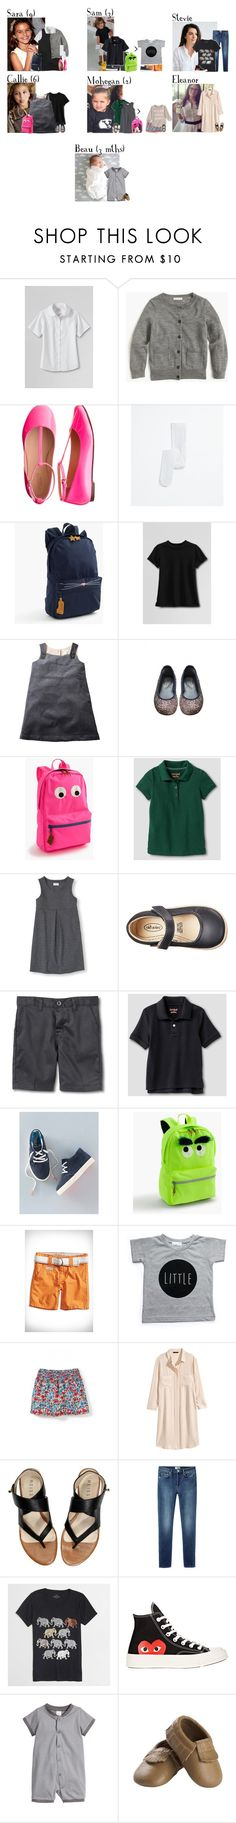 """Wednesday // Music Lessons, School/Daycare & Activities // 9/21/16"" by graywolf145 ❤ liked on Polyvore featuring Lands' End, Kate Spade, J.Crew, Zara, Bonpoint, Dickies, GUESS, H&M, Reiss and Acne Studios"